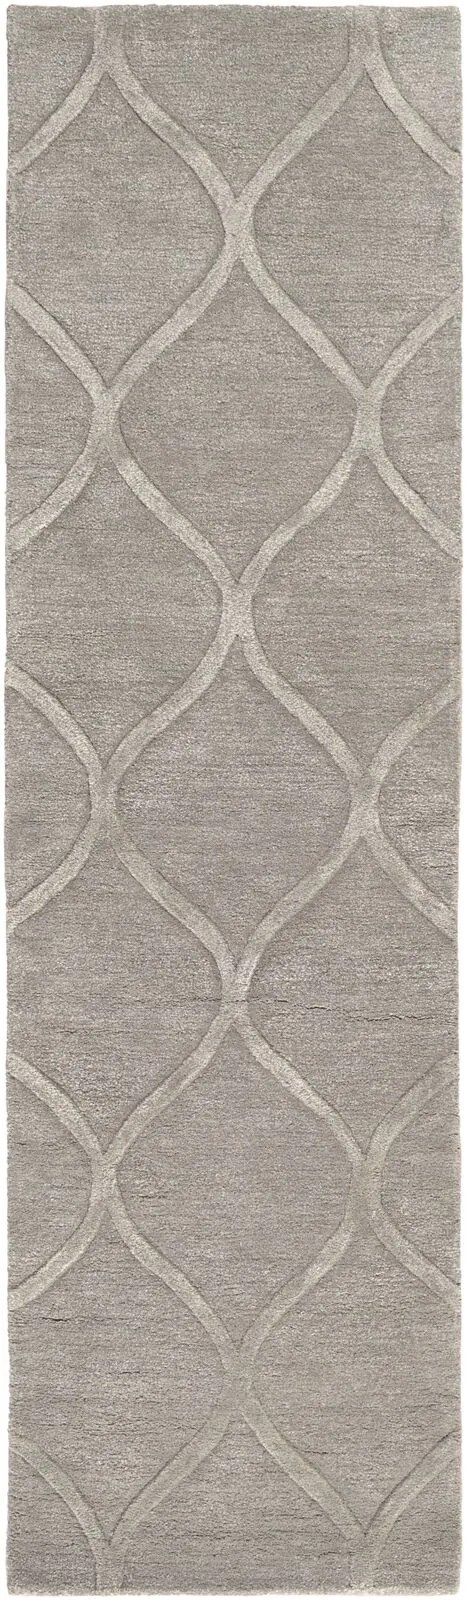 Bronaugh Hand-Tufted Light Gray Area Rug Rug Size: Runner 2'3